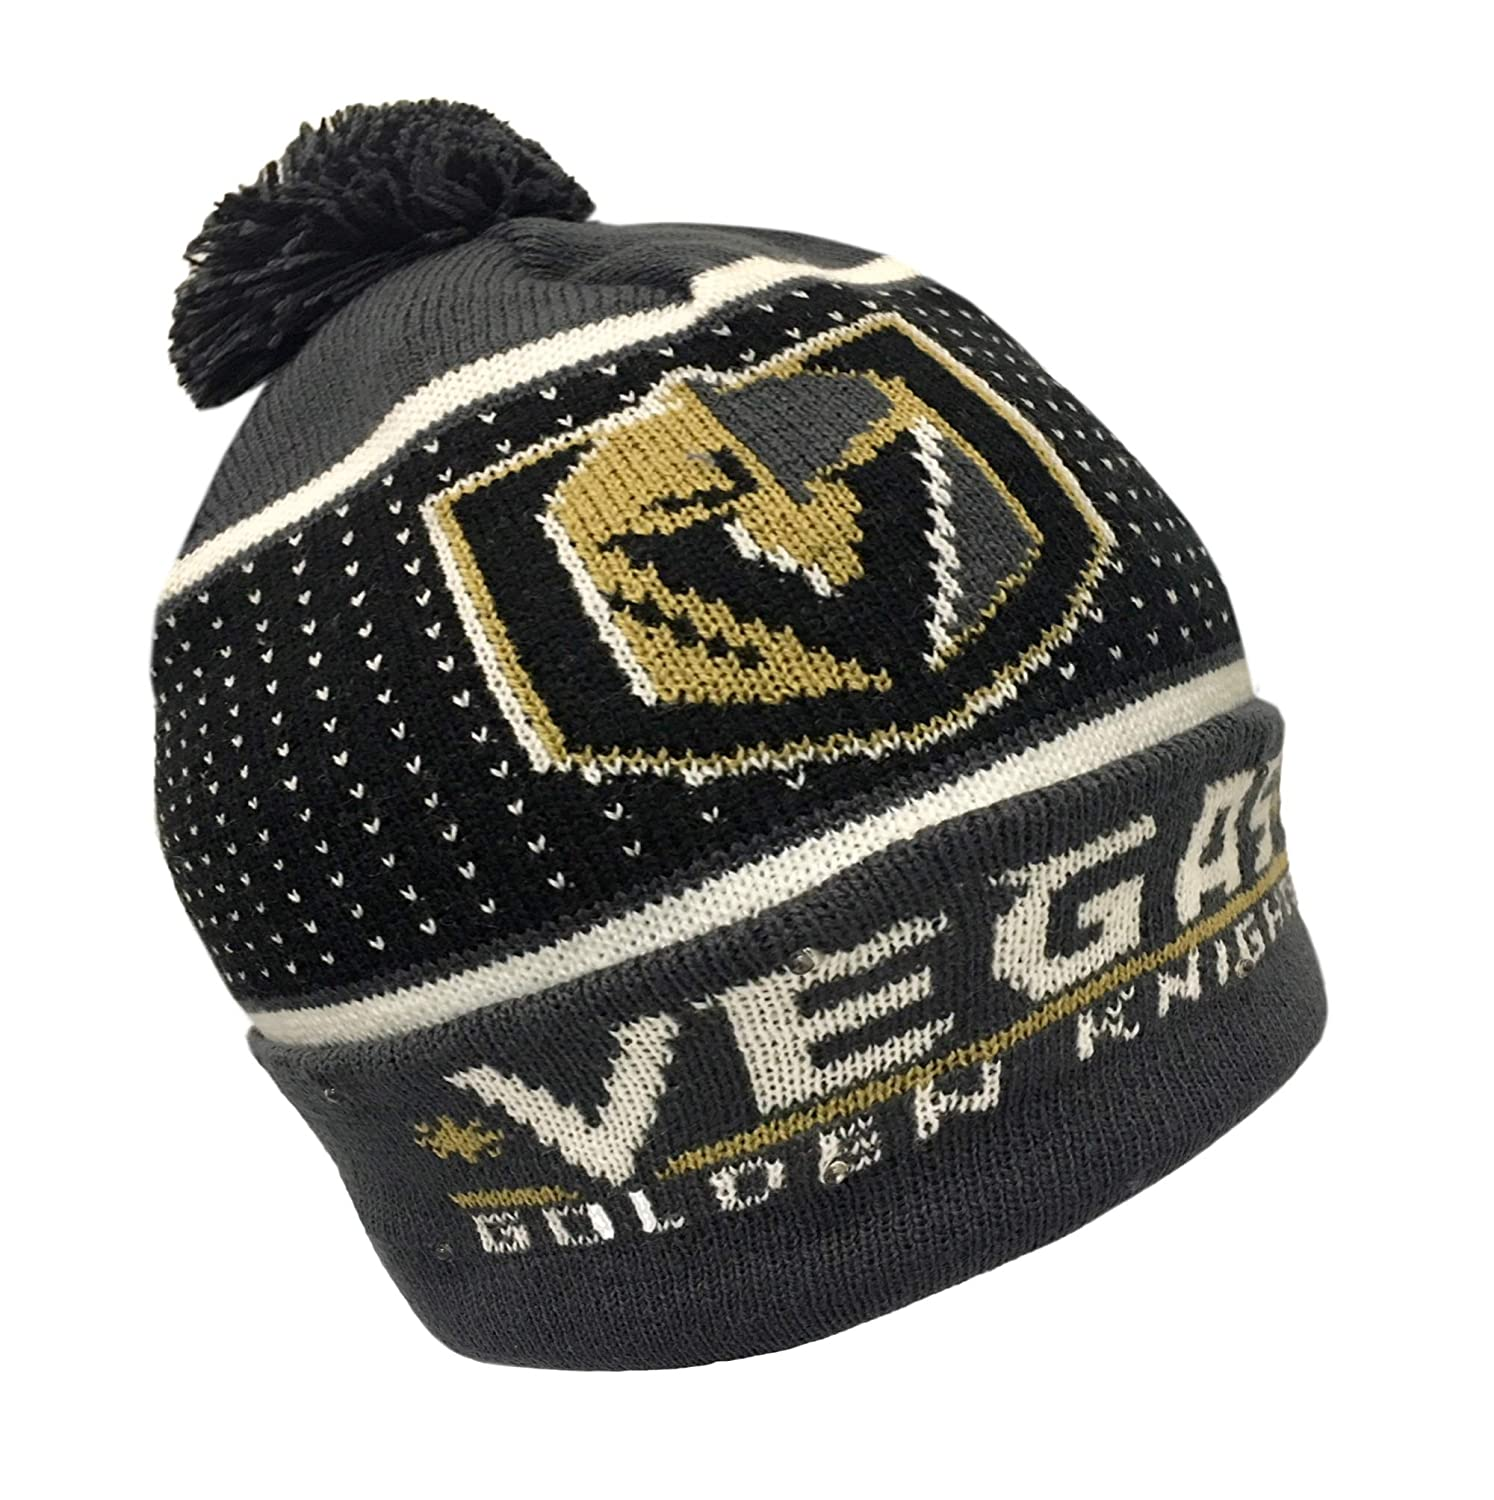 brand new 1989e 4ade2 Amazon.com   Forever Collectibles NHL Boston Bruins Big Logo Knit Light Up  Beanie Hat   Sports   Outdoors